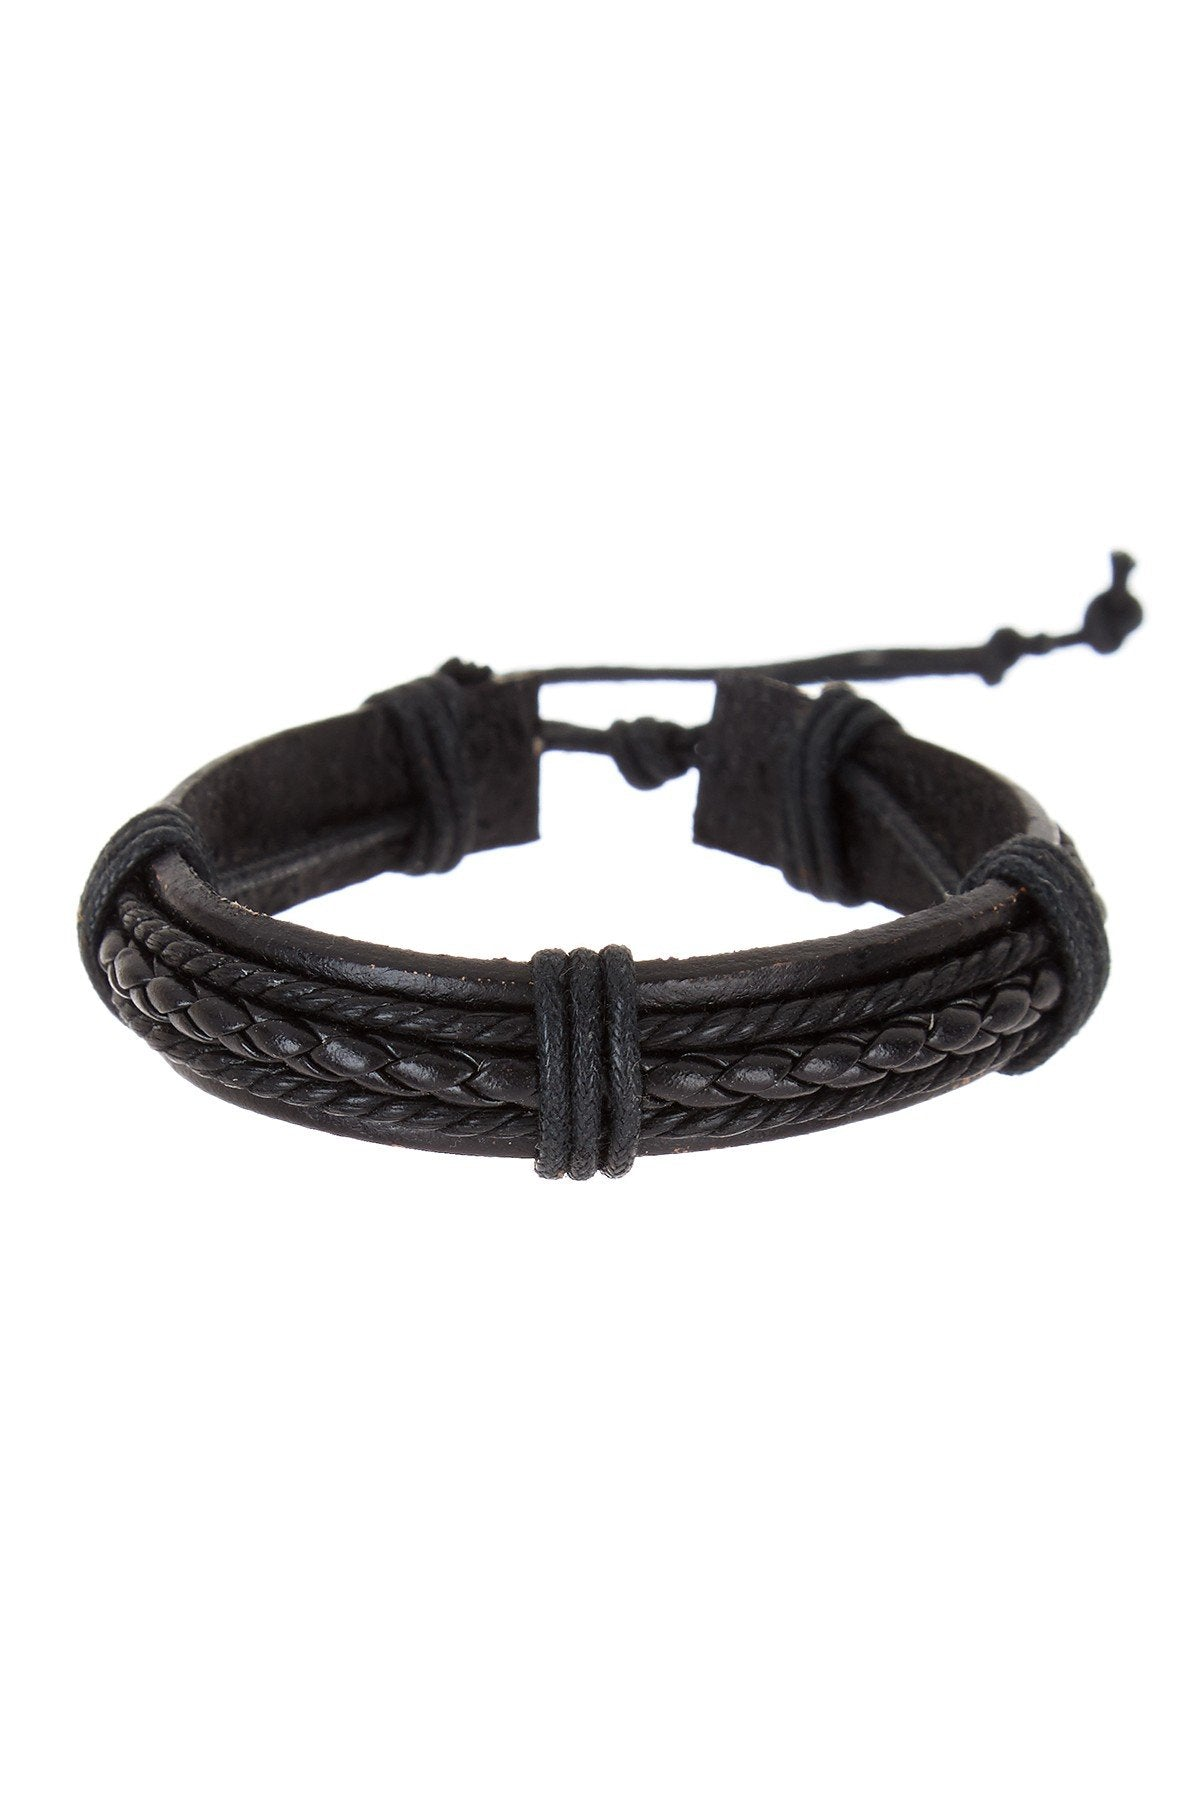 Black Woven Adjustable Leather Bracelet